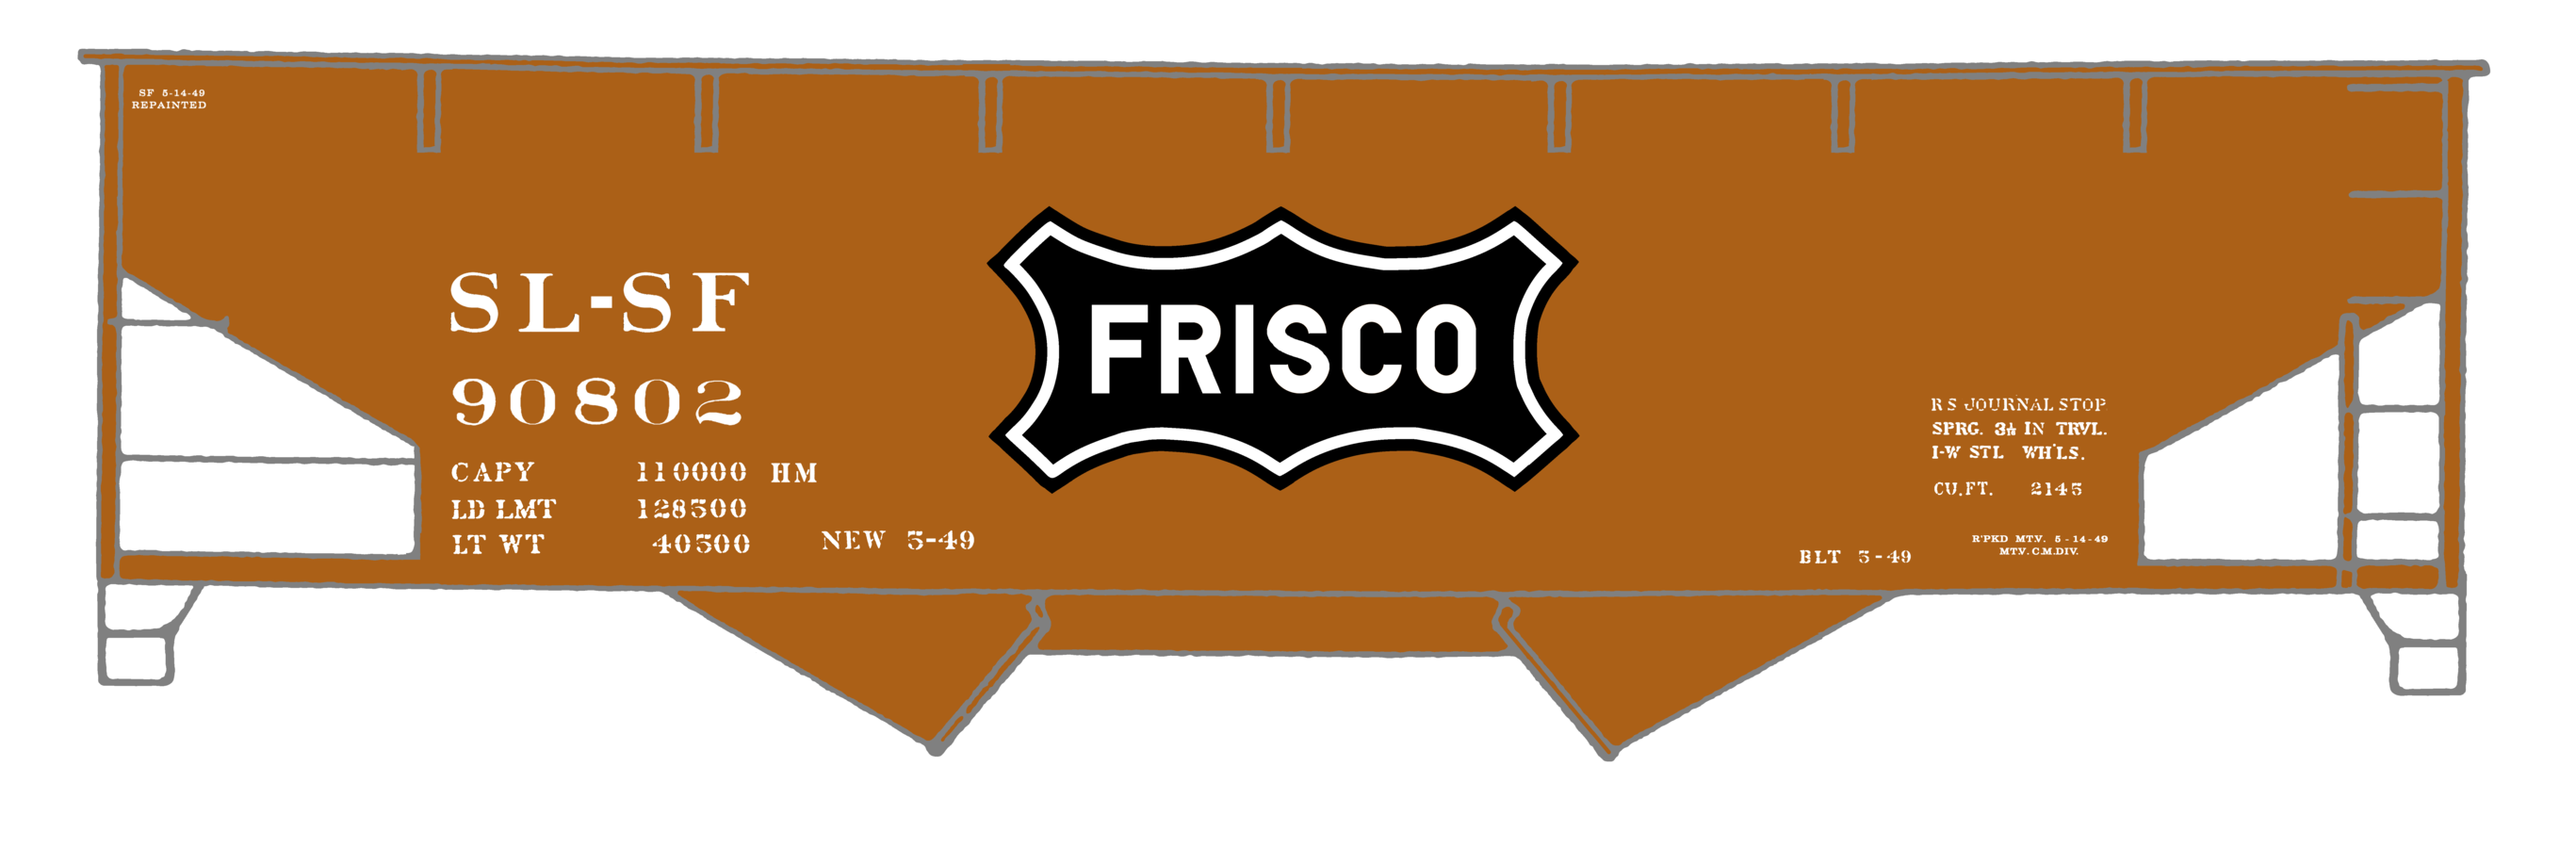 K4-HO-Decals-SLSF-Frisco-Twin-Hopper-Car-White-Large-Herald